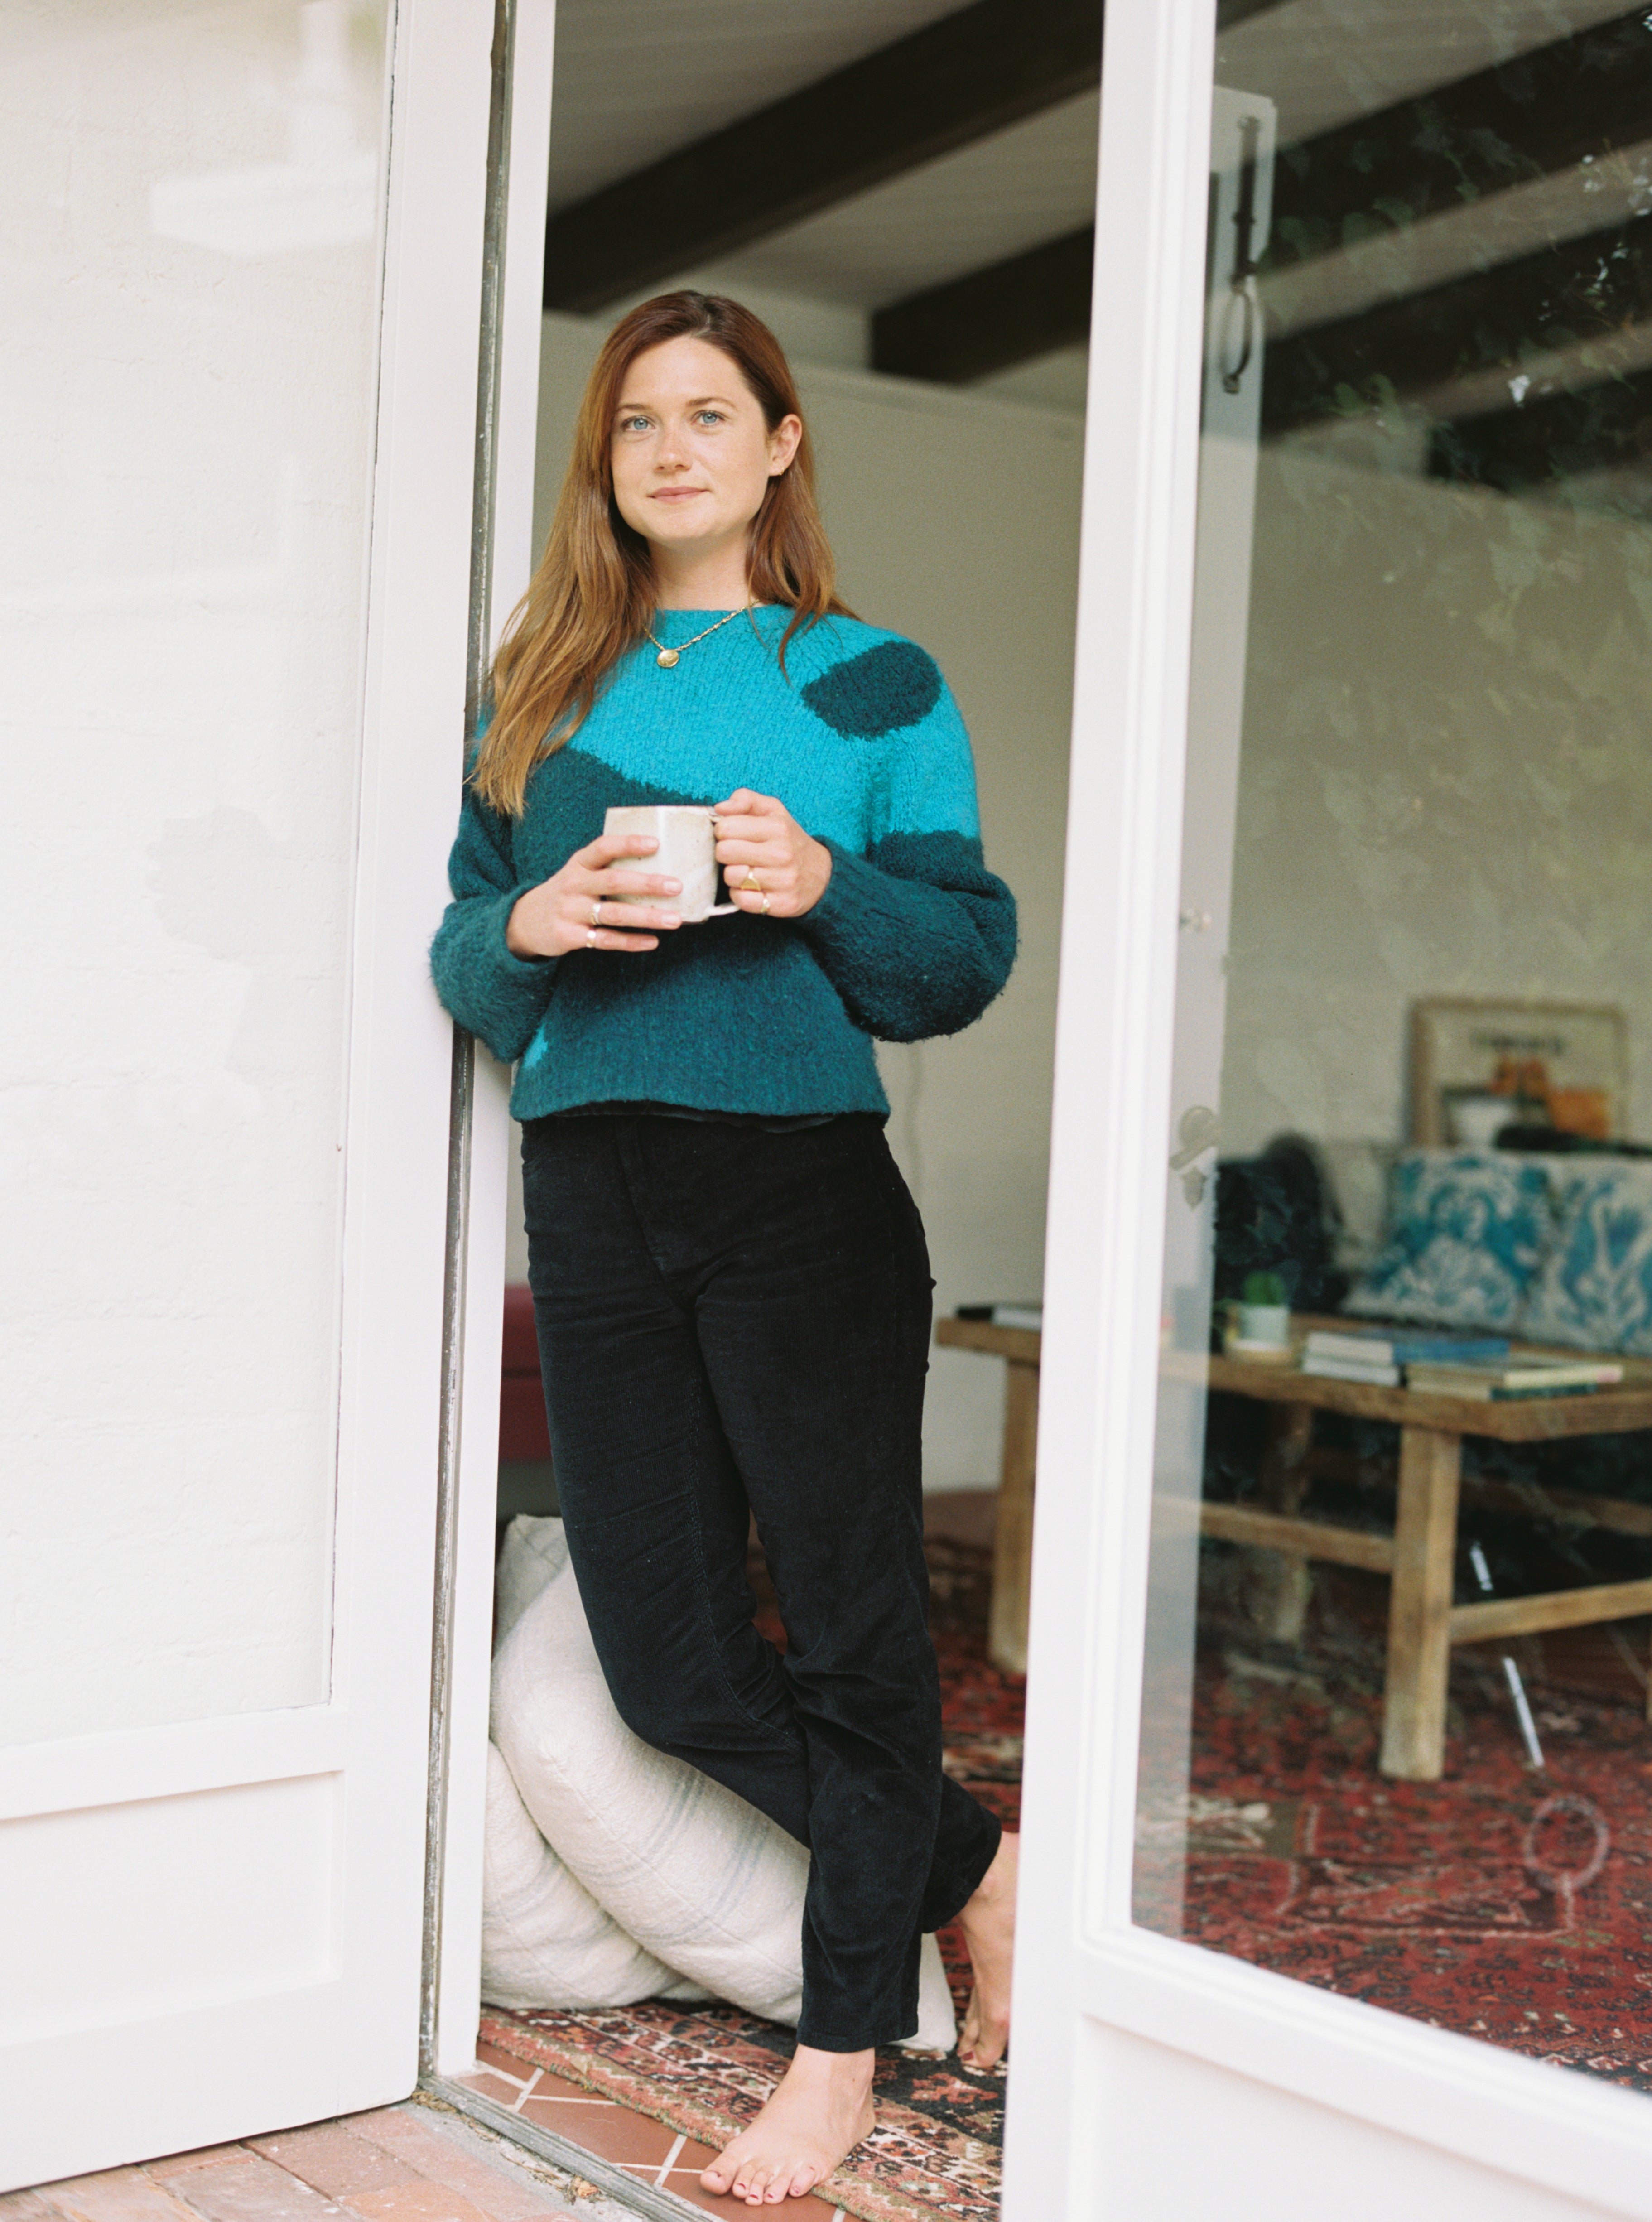 Bonnie Wright at her home in Rustic Canyon, 2020. Photo by Justin Chung.